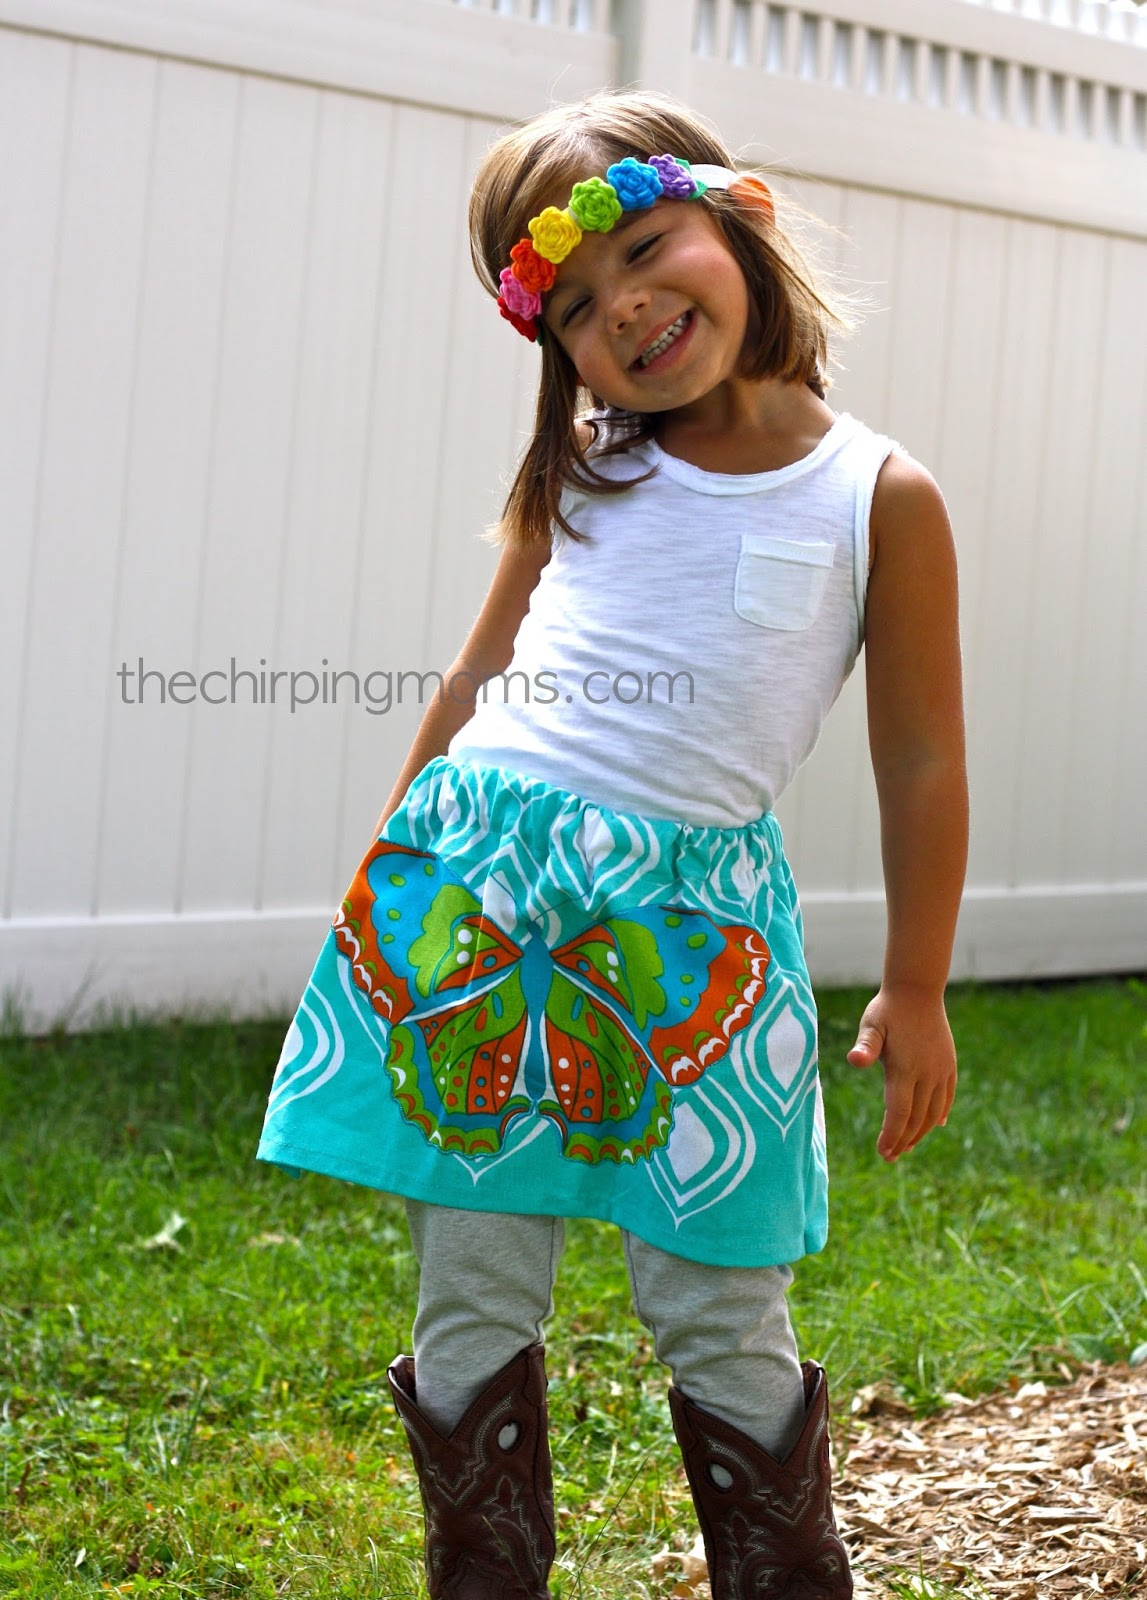 How to Make A Skirt From A Tea Towel - The Chirping Moms